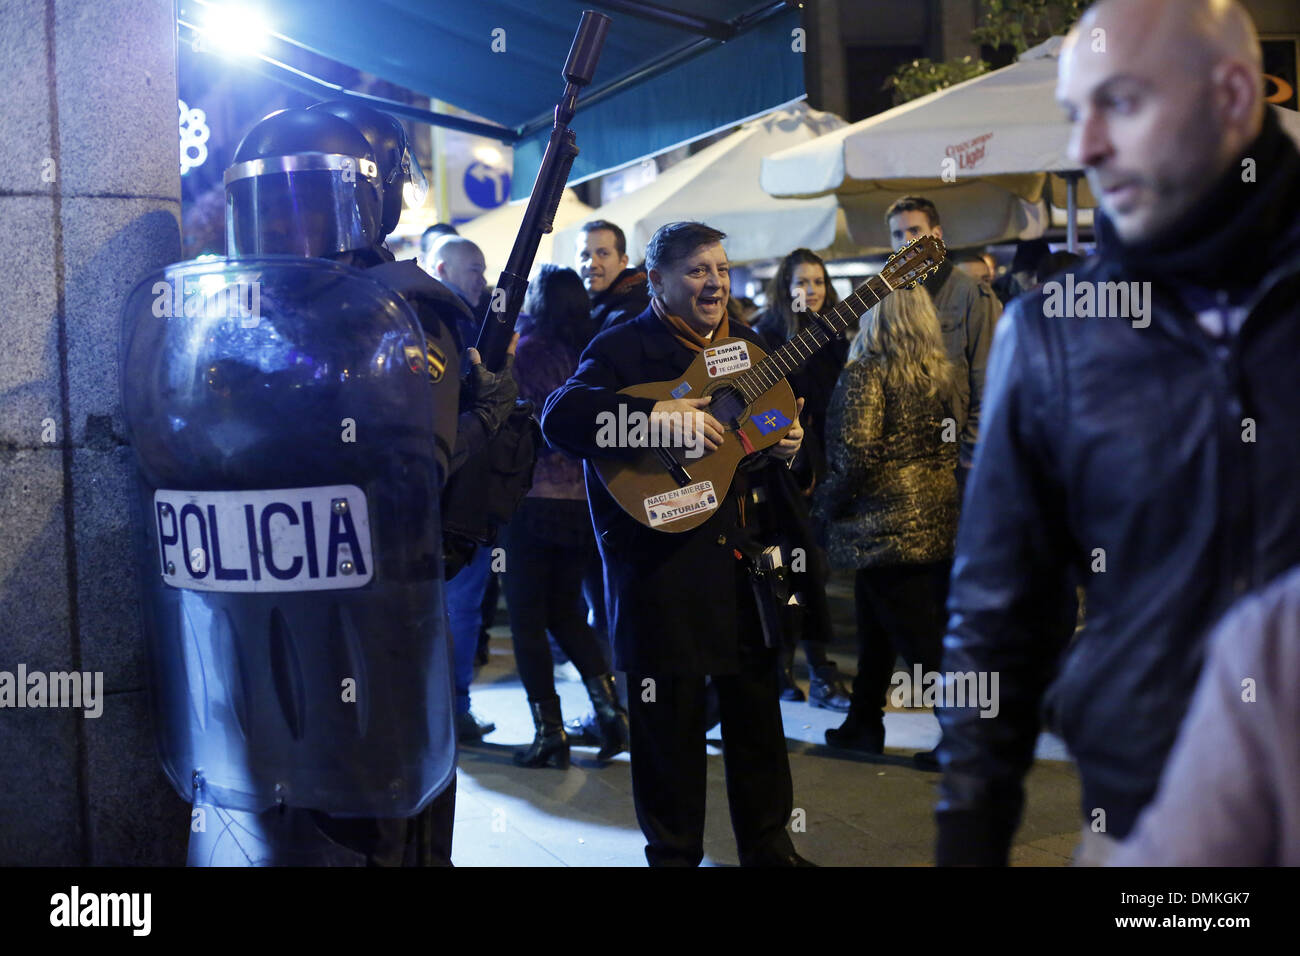 Madrid, Spain. 14th Dec, 2013. A man plays the guitar while riot police clear the street afte riots rnear parliament in Madrid, Saturday, Dec. 14, 2013. Protesters, angry at draft legislation that aims to set heavy fines for offenses such as causing serious disturbances outside parliament, gathered near Spain's legislature under the gaze of a strong police presence. The protestopposes the introduction of a bill that will set fines of up to 30,000 euros ($40,800) for offenses such as burning the national flag and insultin Credit:  ZUMA Press, Inc./Alamy Live News - Stock Image